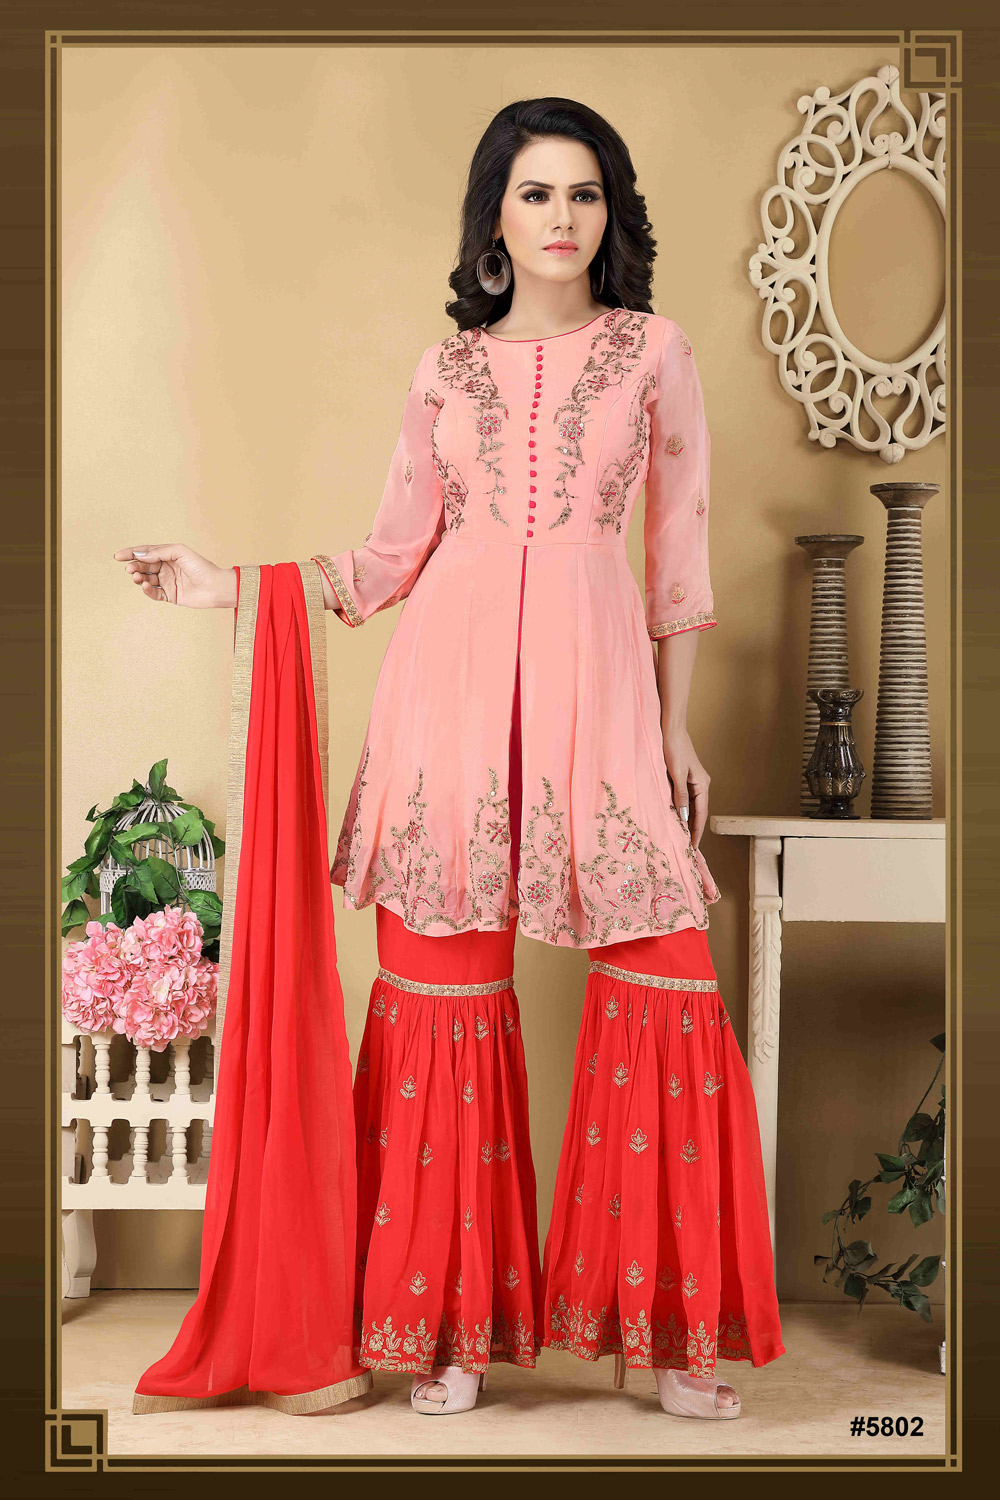 Peach & Red hand embroidered Sharara